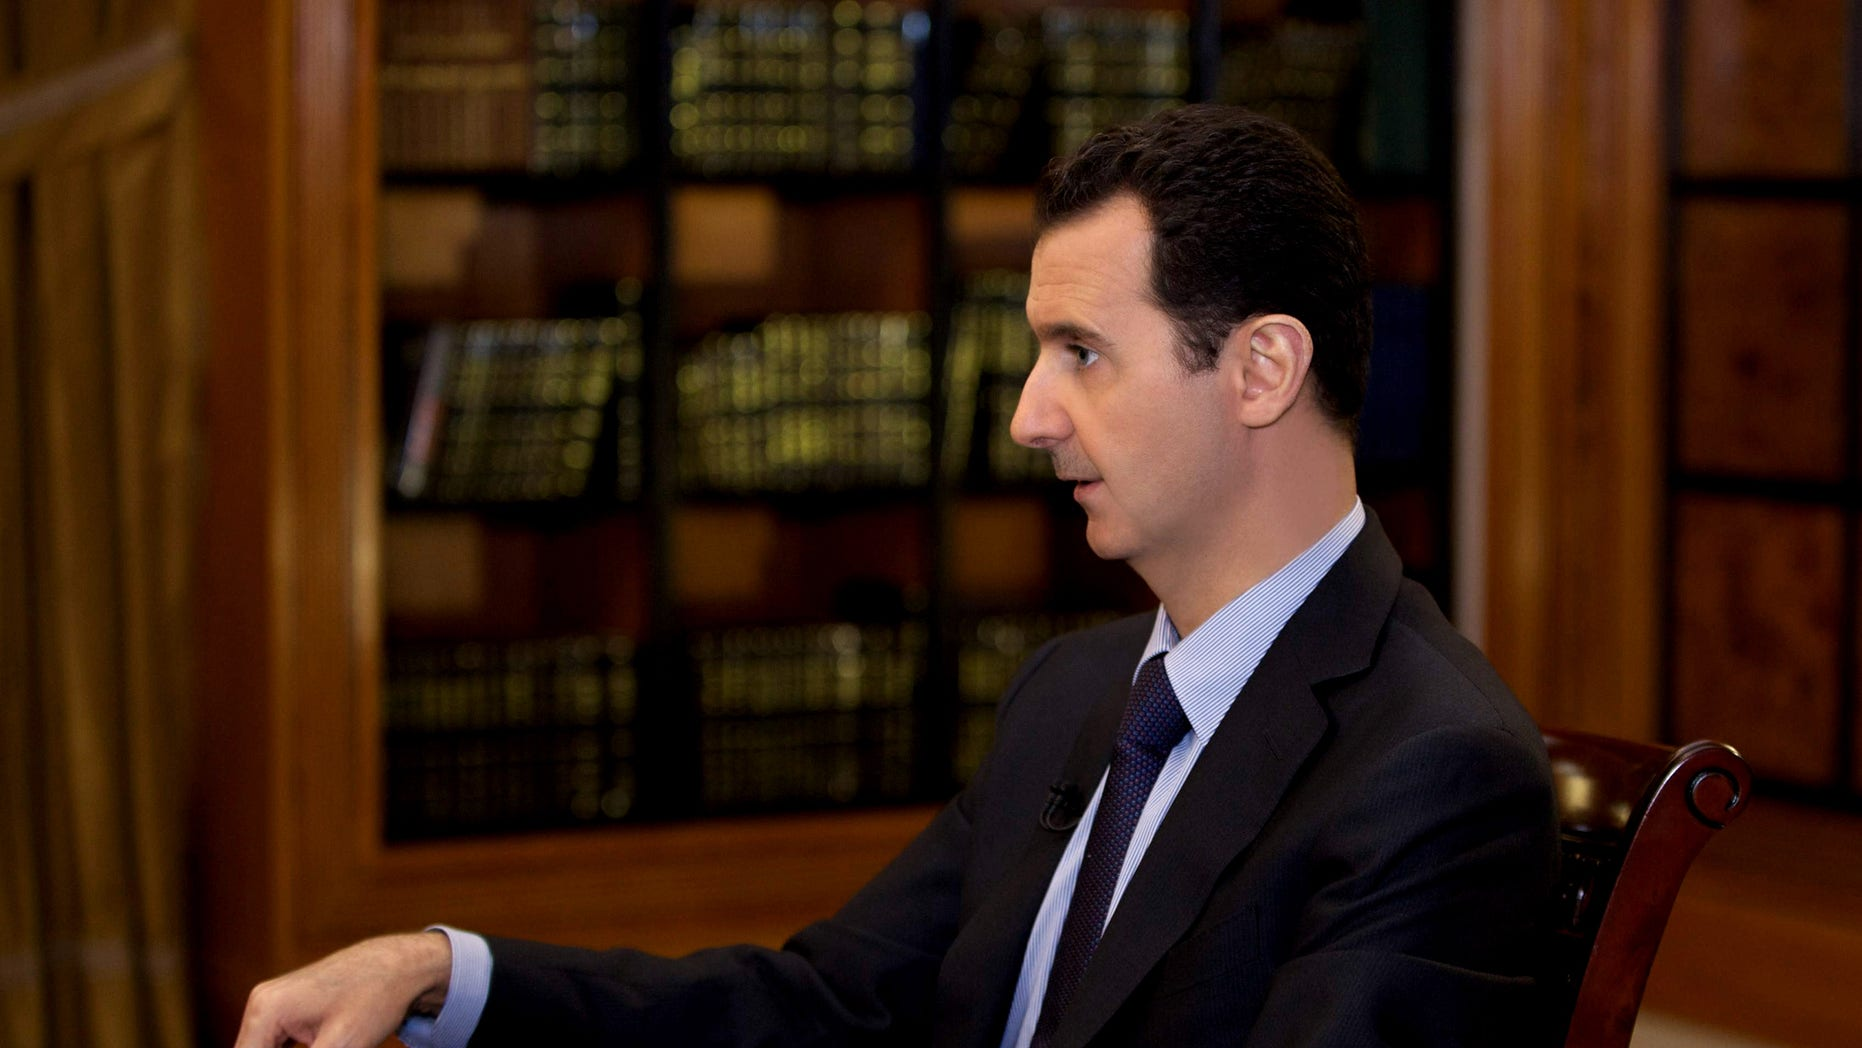 In this photo, which AP obtained from Syrian official news agency SANA and which has been authenticated based on its contents and other AP reporting, President Bashar Assad gestures as he speaks during an interview with Lebanon's Al-Mayadeen TV, at the presidential palace in Damascus, Syria, Monday, Oct. 21, 2013. Syria's president said Monday that the factors that would allow a landmark conference aimed at ending the country's civil war do not yet exist, throwing further doubt on international efforts to hold peace talks that have already been repeatedly delayed. (AP Photo/SANA)